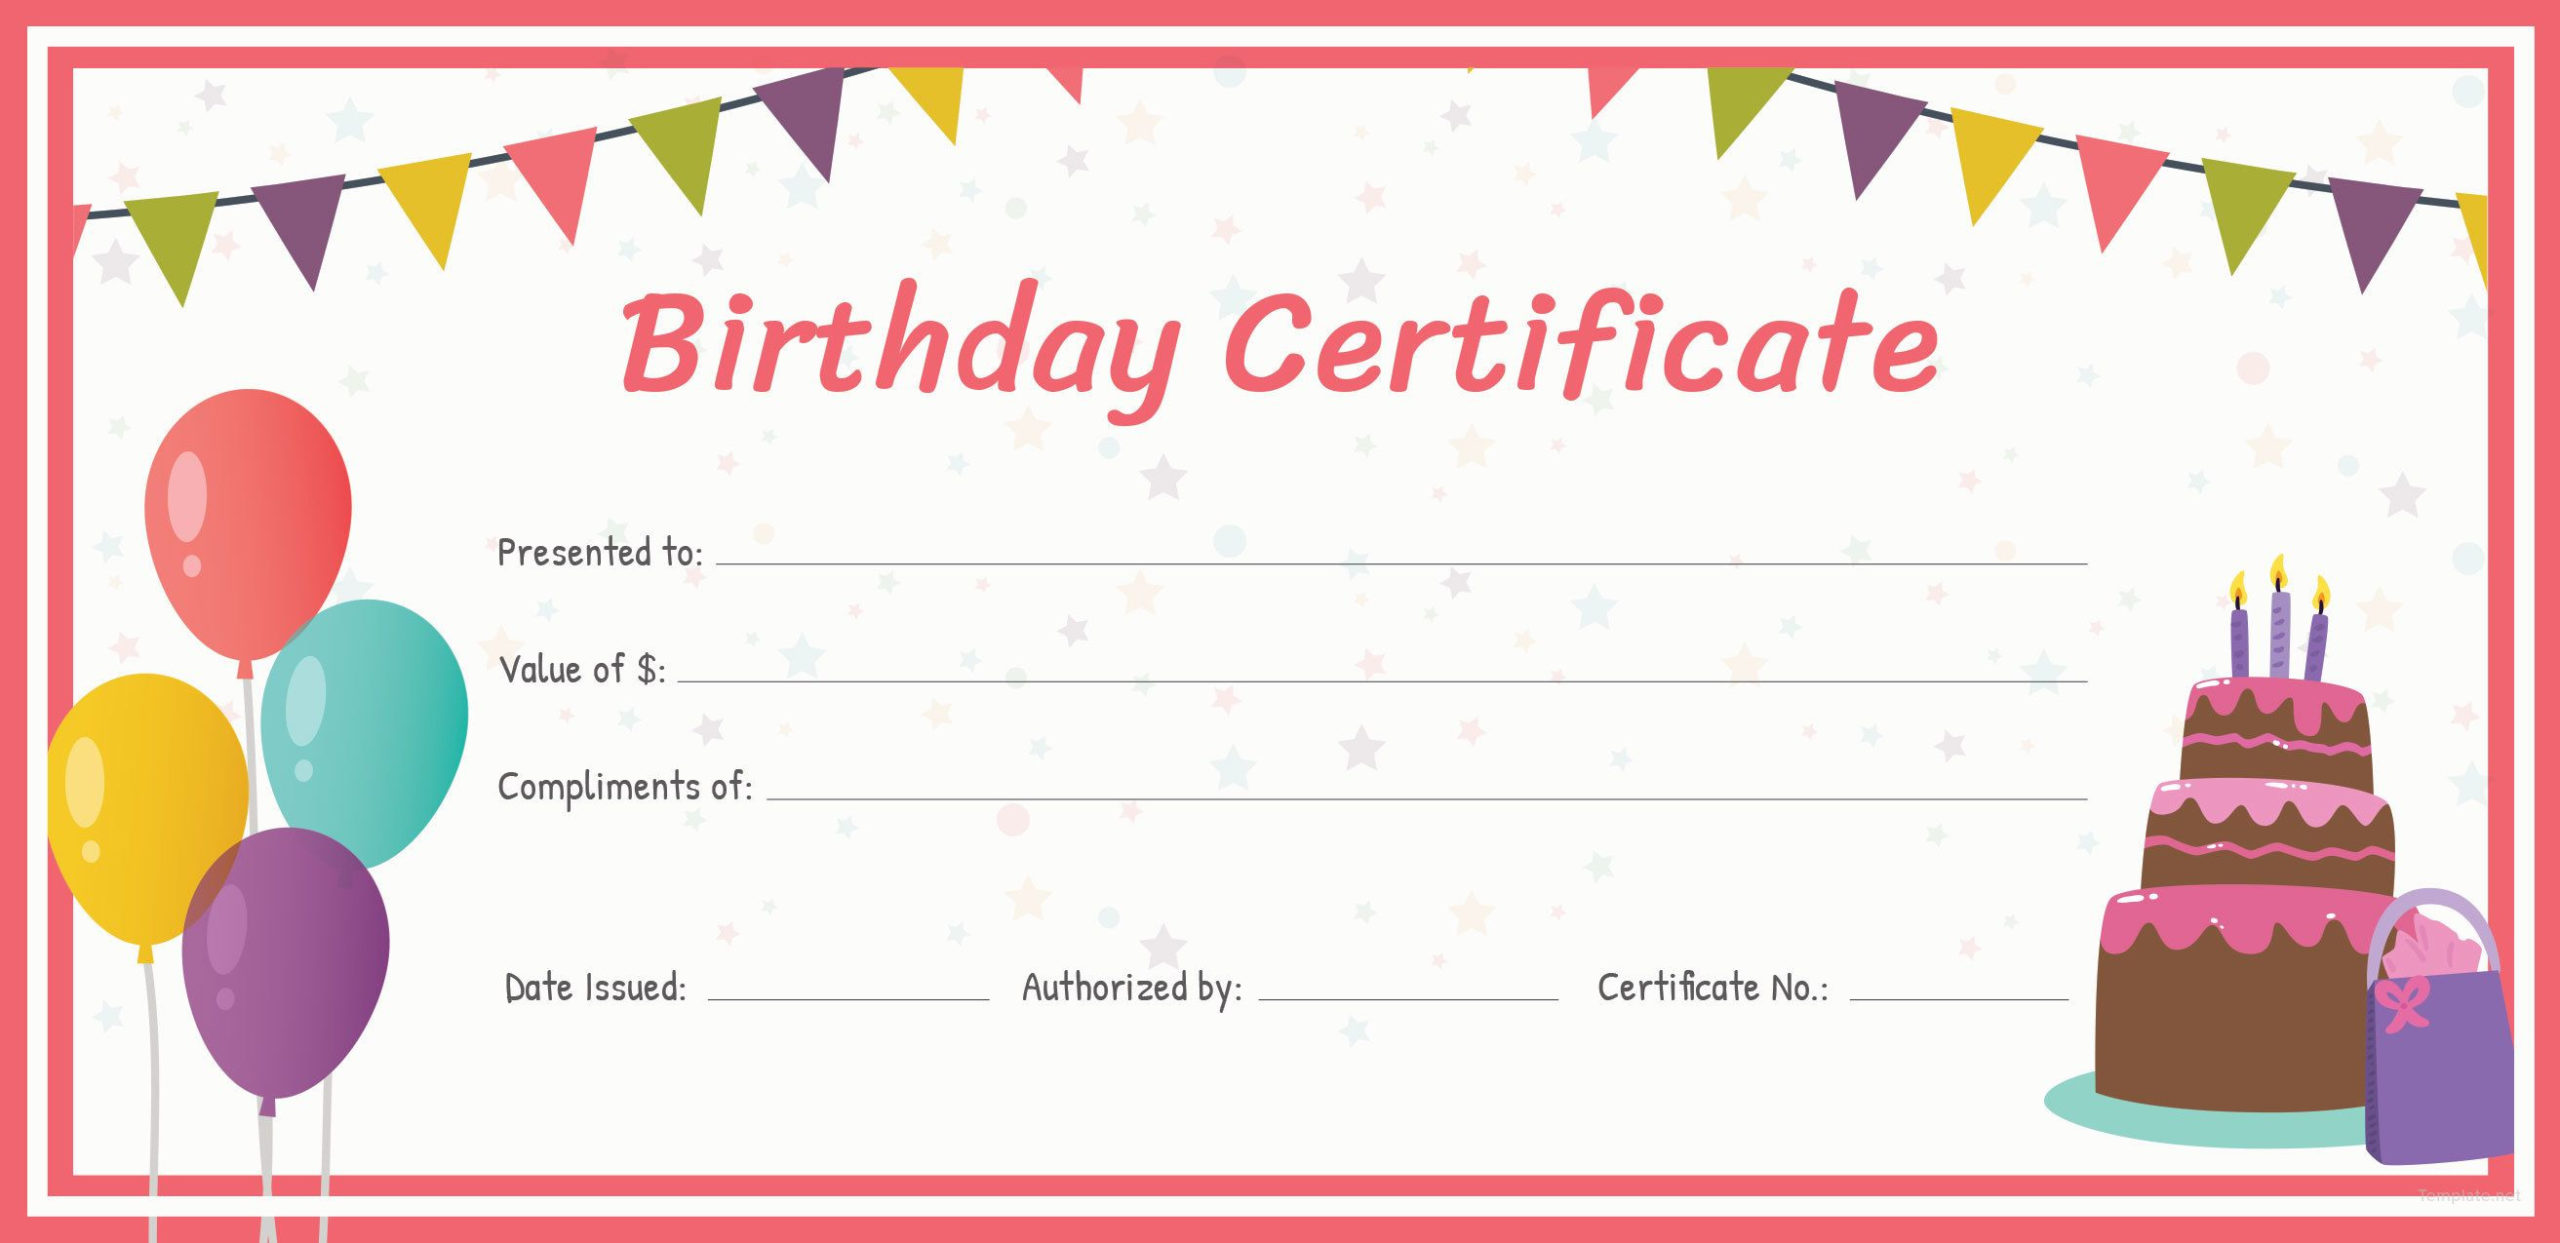 Free Birthday Gift Certificate  Free Gift Certificate within Kindness Certificate Template 7 New Ideas Free